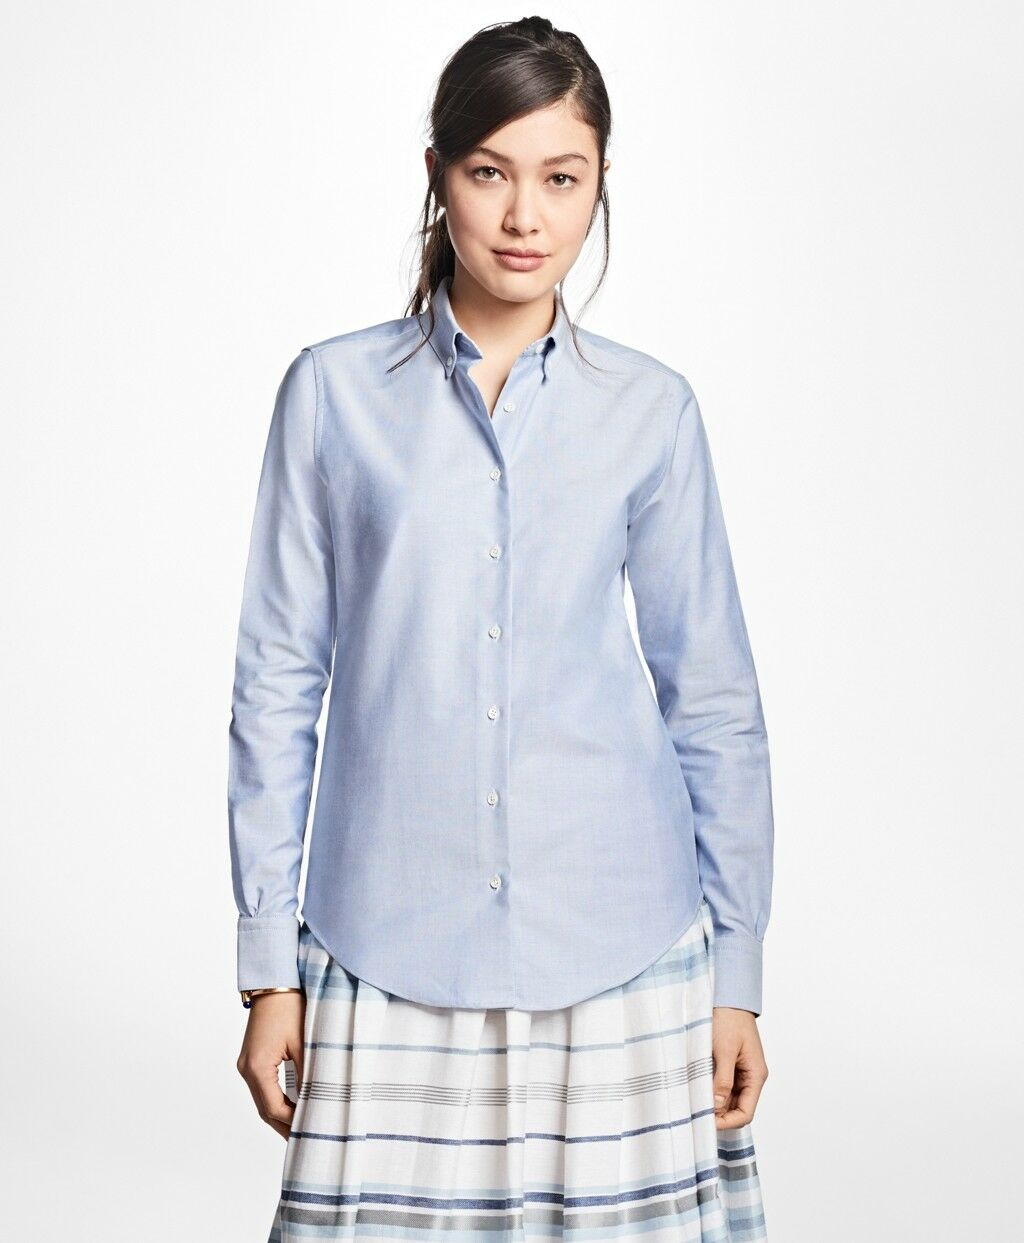 BROOKS BROTHERS Classic Fit damen's Supima Cotton Shirt   Größe 2   Blau